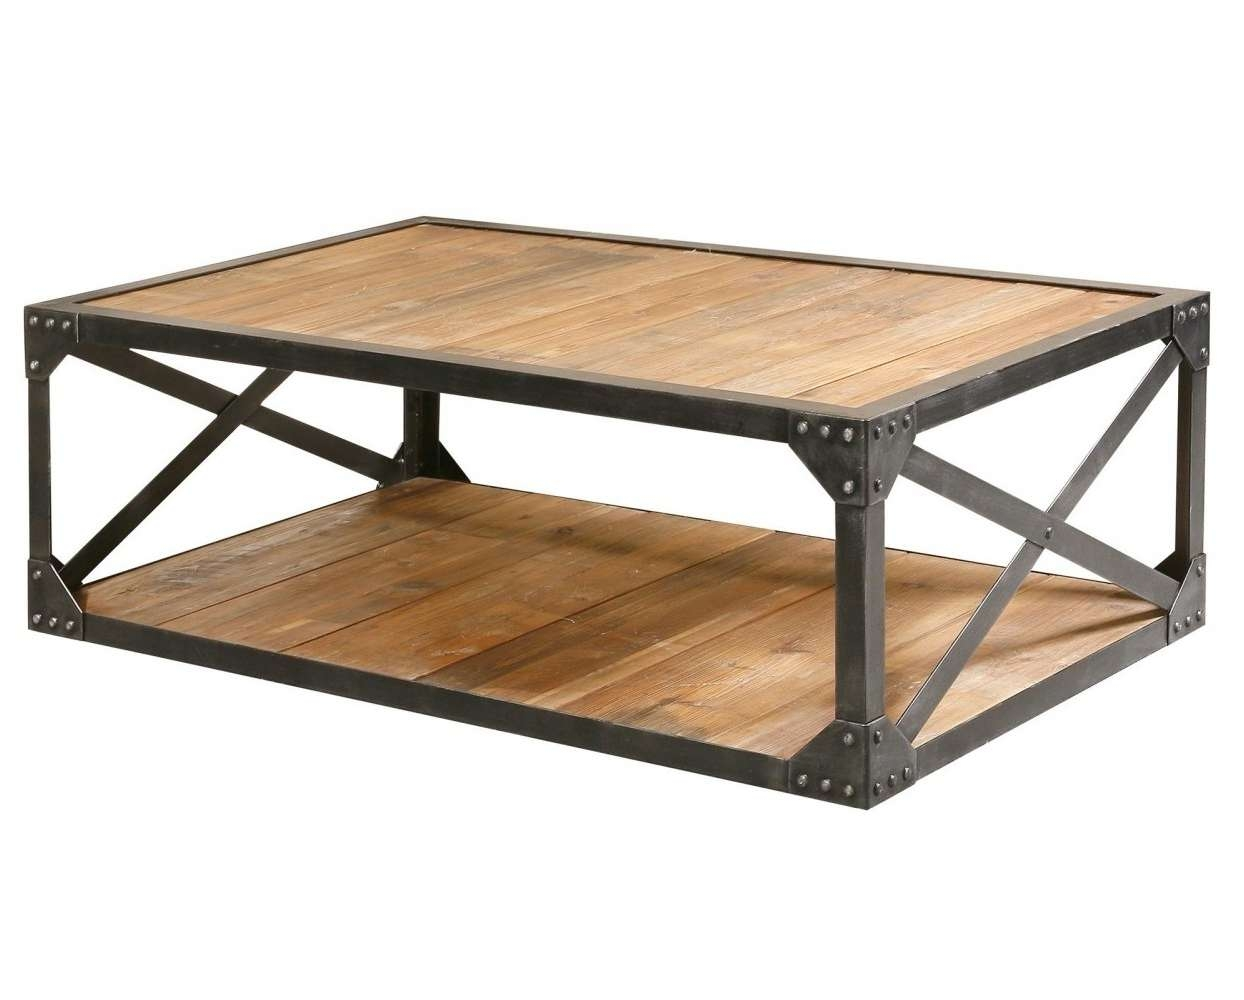 Coffee Tables : Exquisite Rustic Wooden Coffee Table Fresh Tables Pertaining To Popular Wooden Coffee Tables (View 20 of 20)